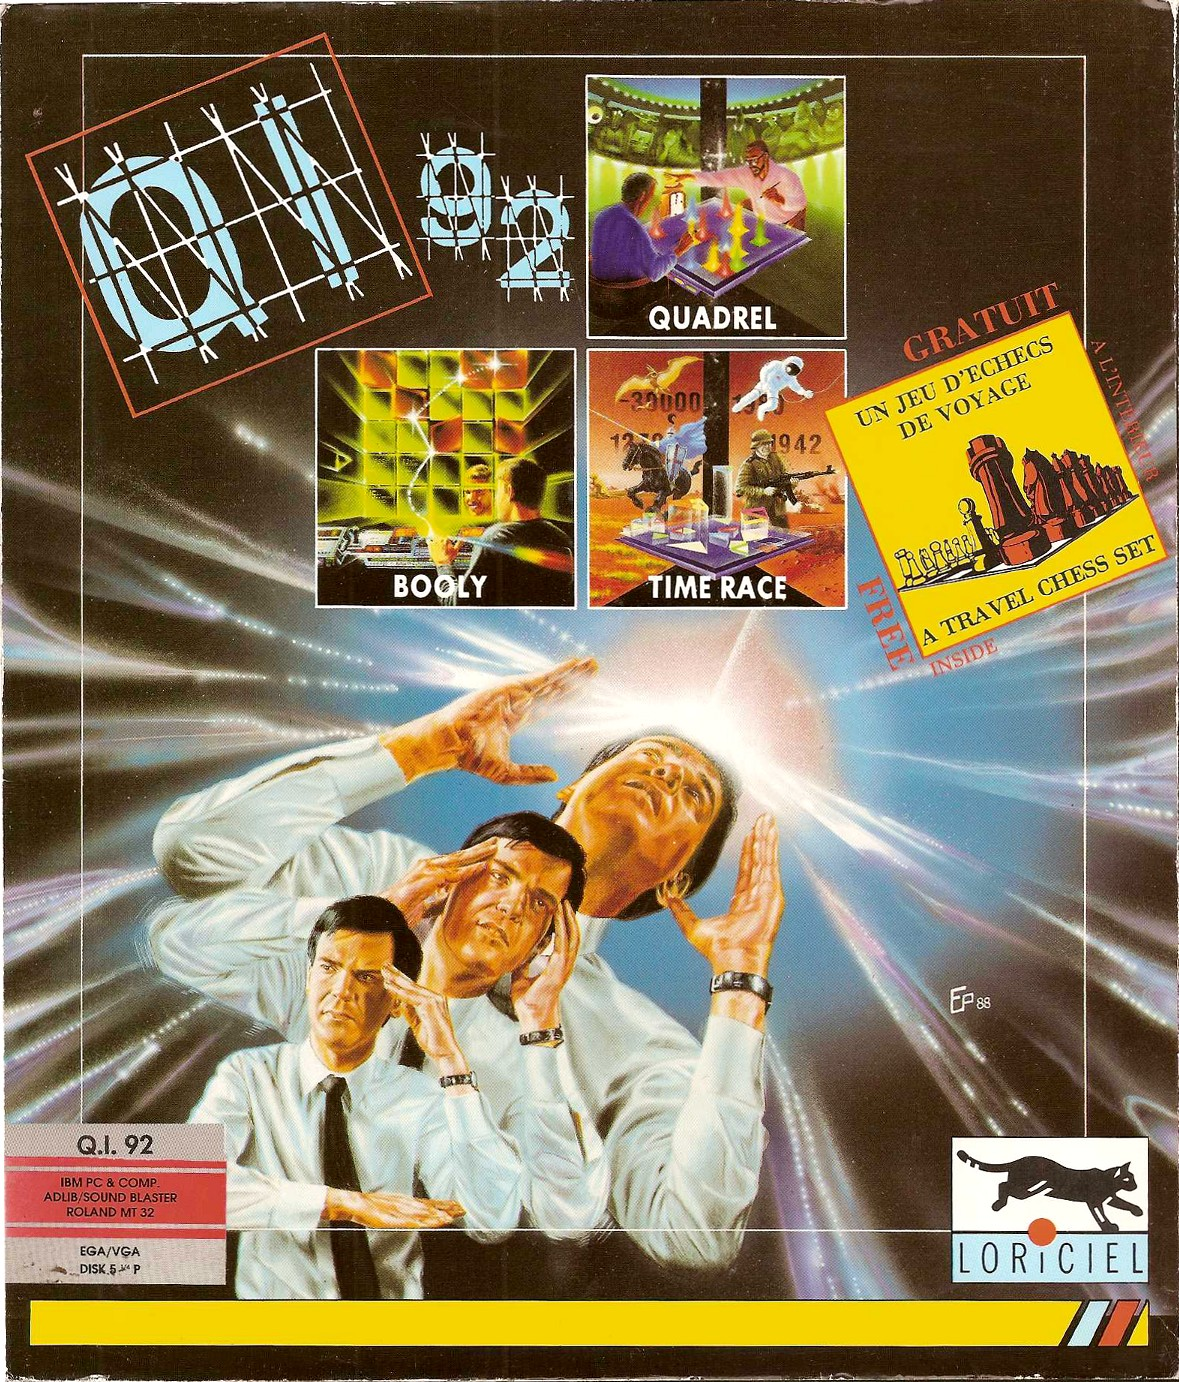 image : /images_abandonware/compilations/7QI92FrontCover.jpg